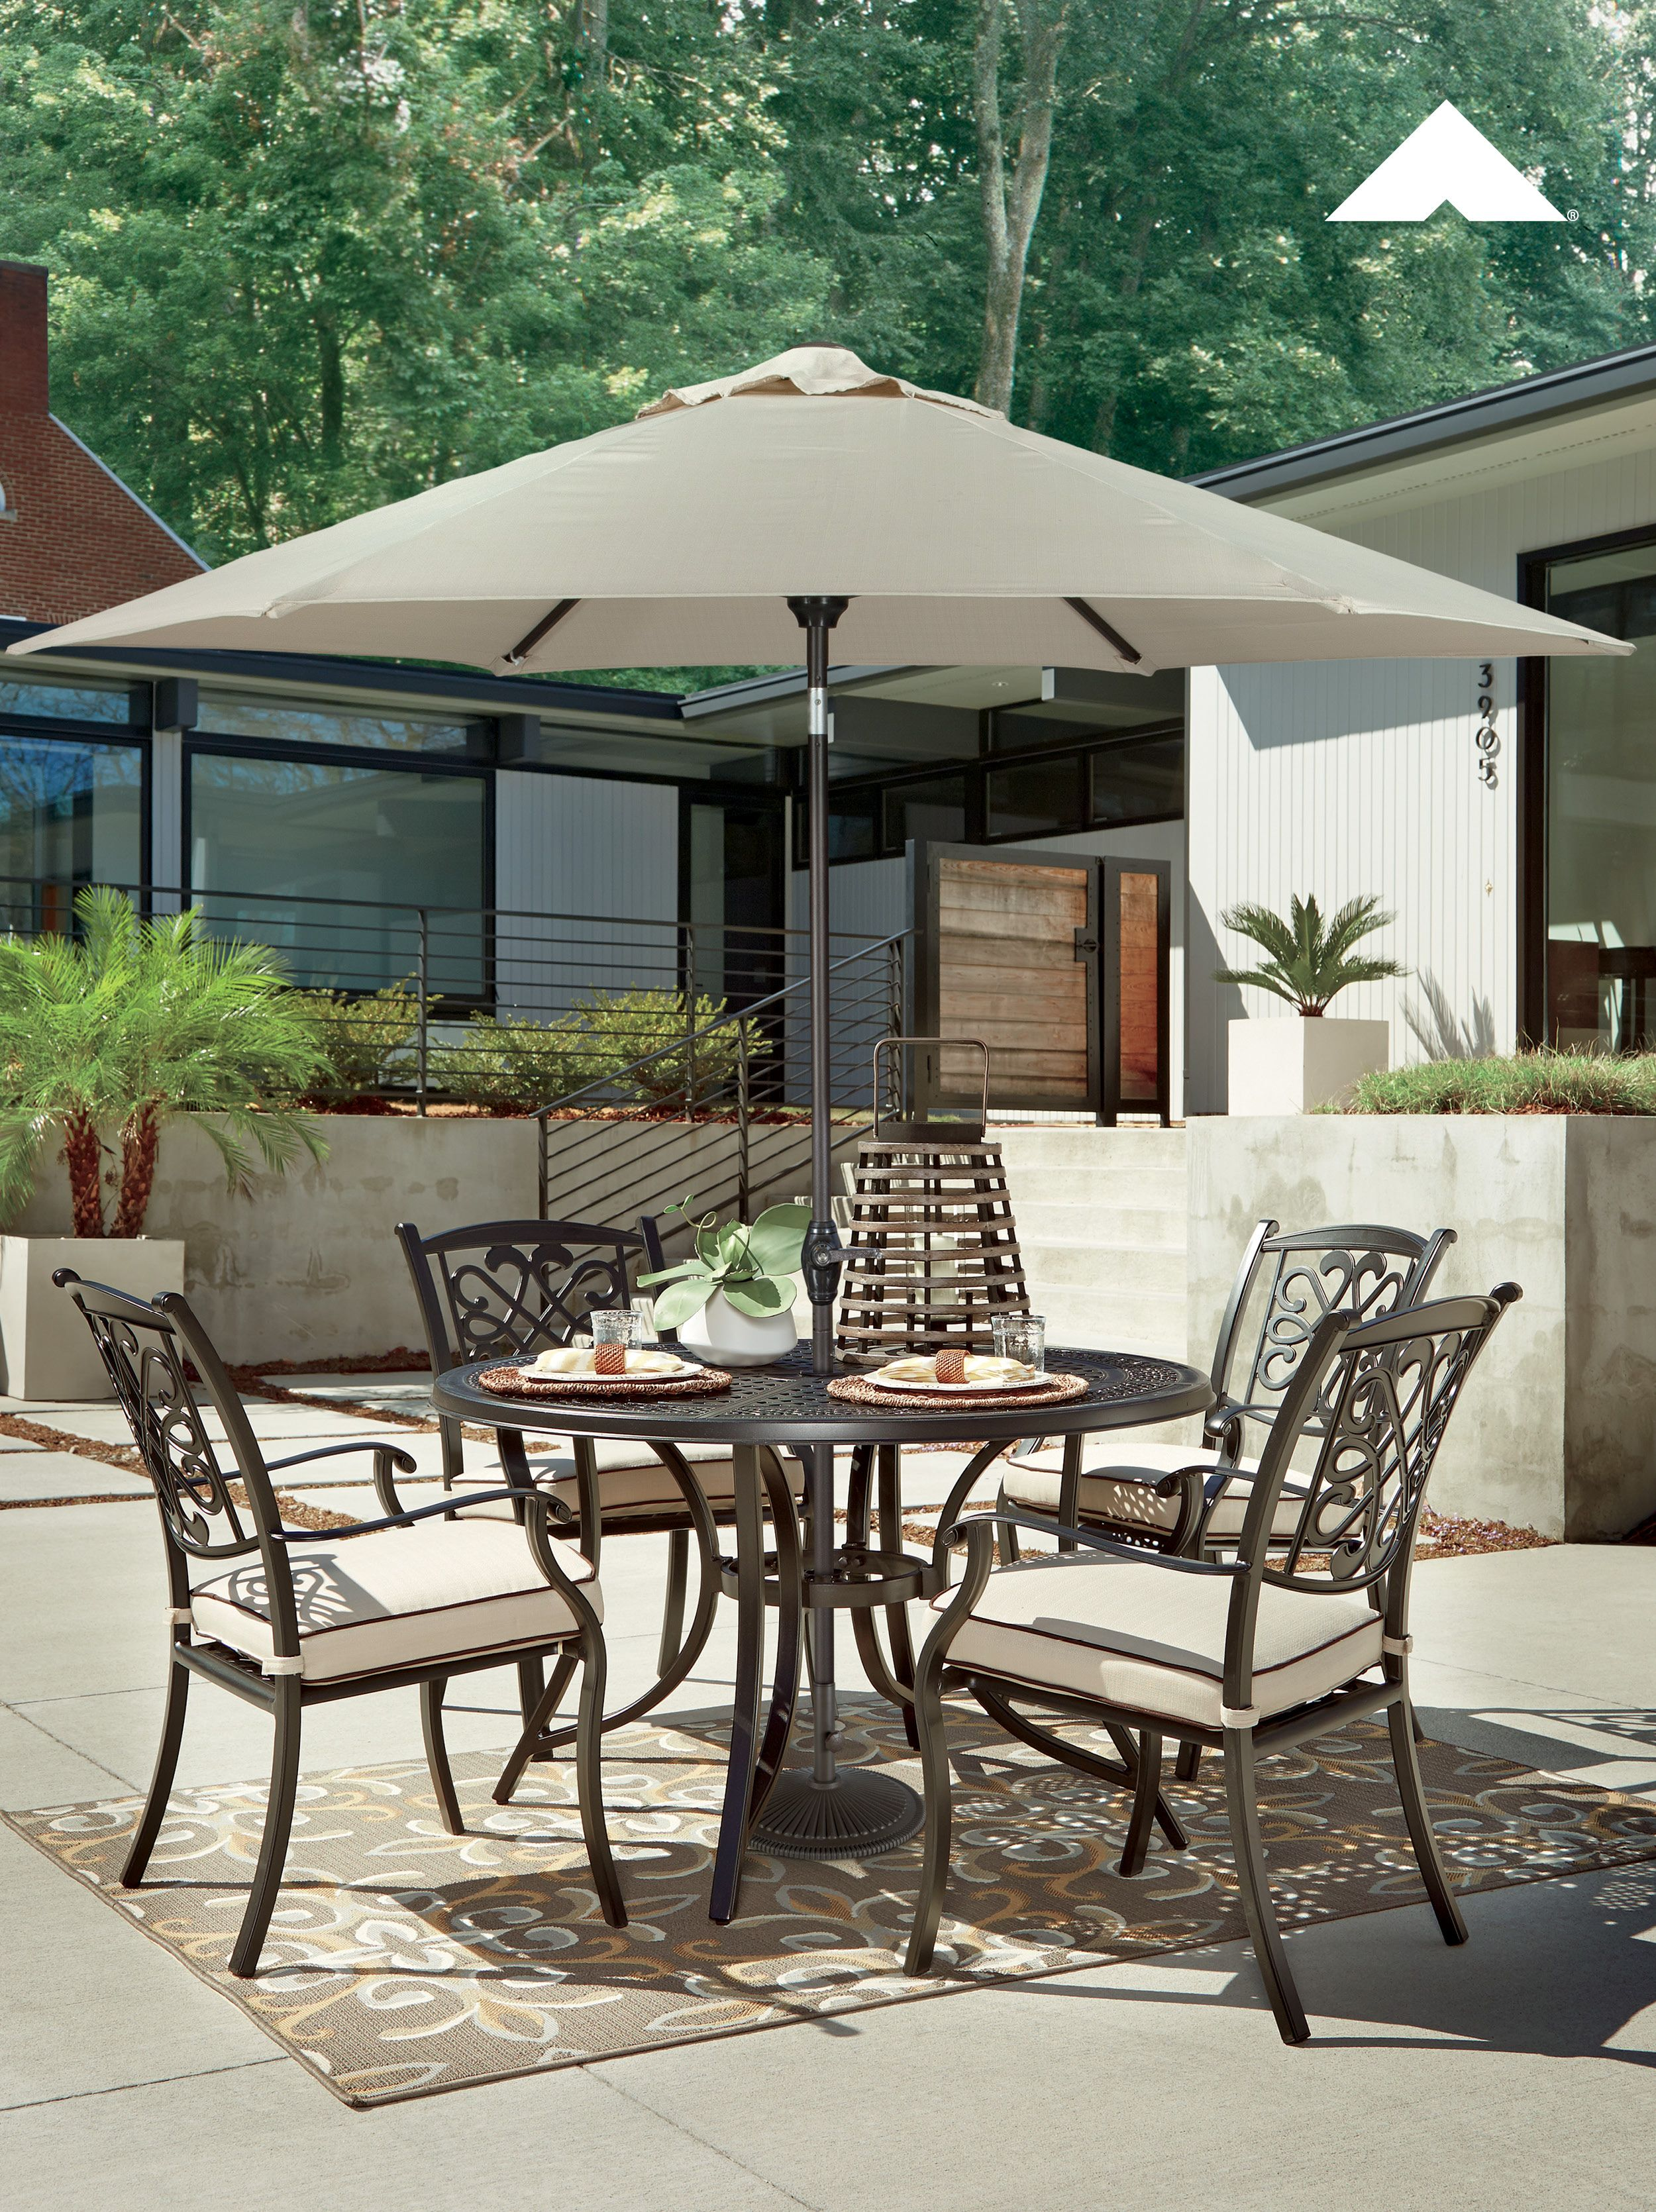 Burnella Dining Set With Umbrella By Ashley Furniture Patio Ideas